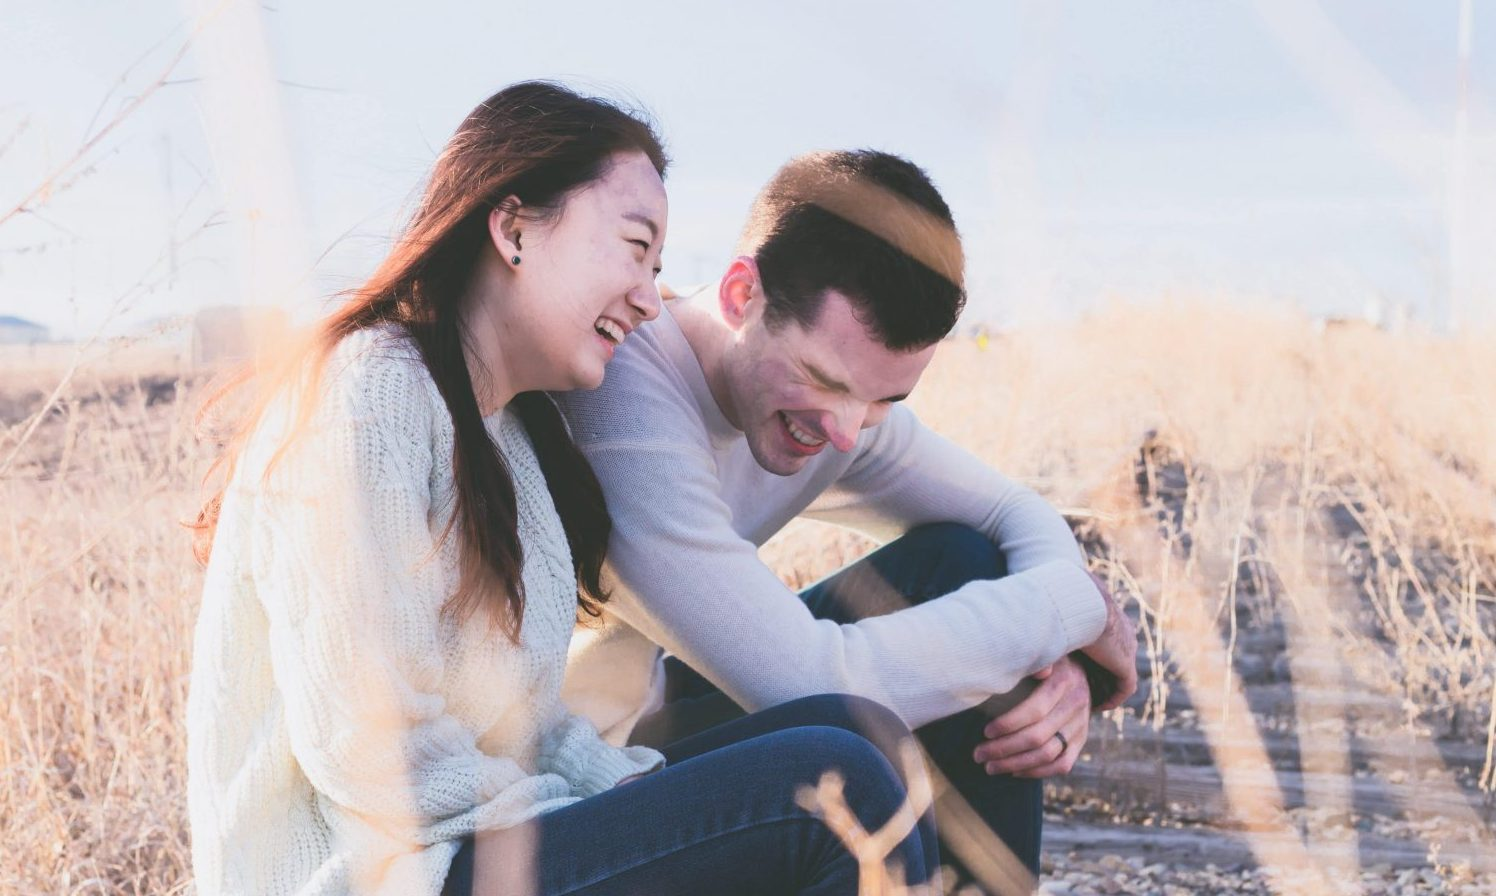 two people laughing